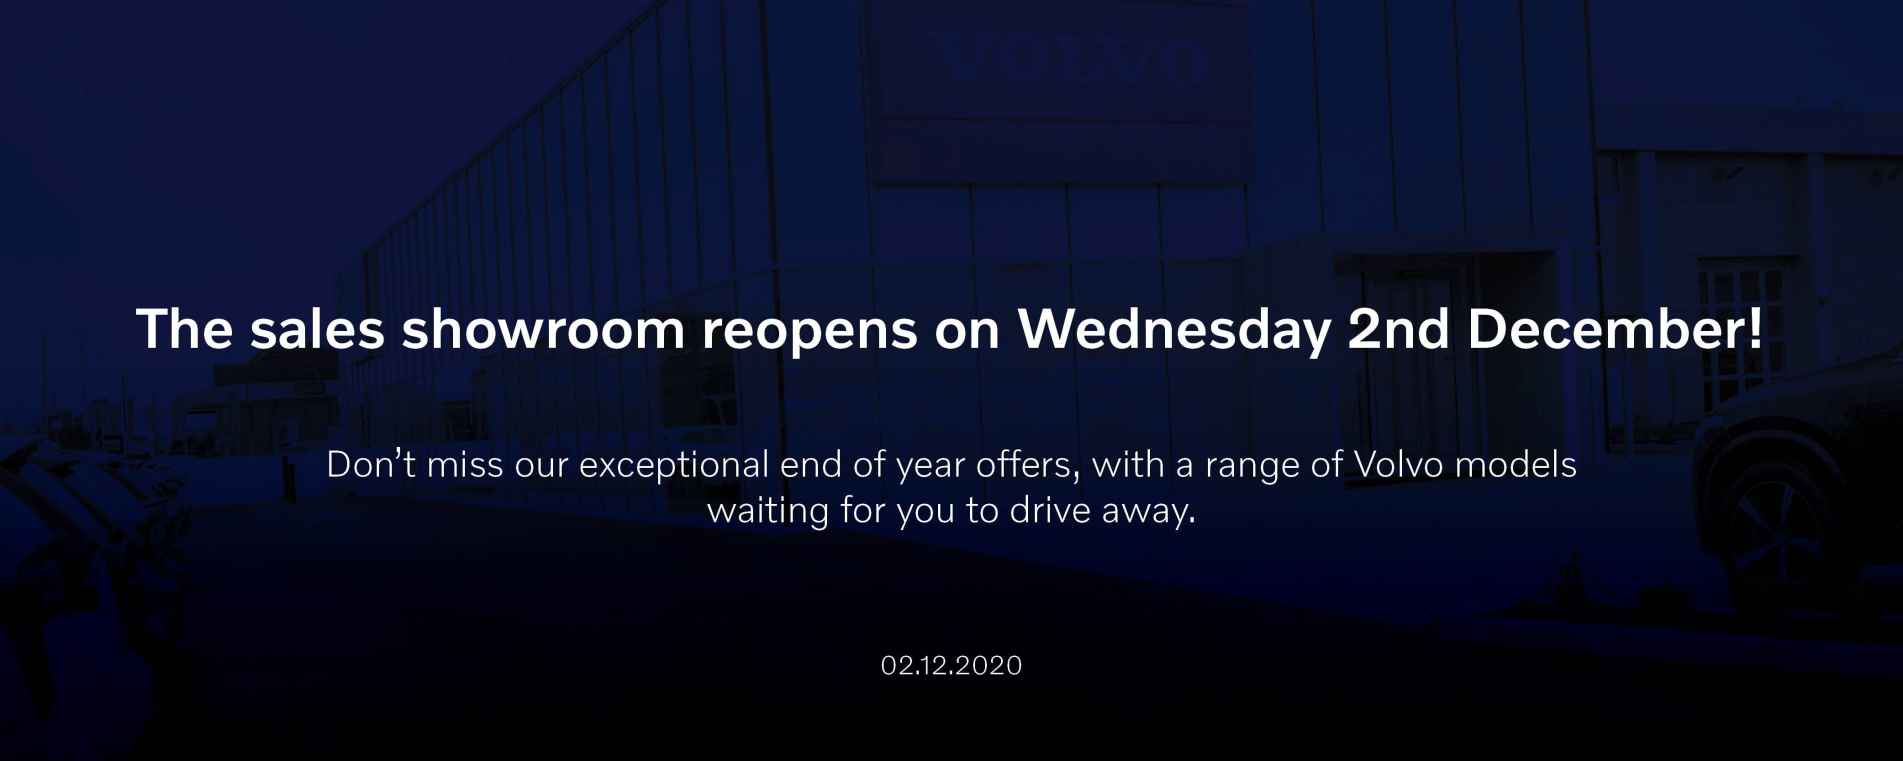 The sales showroom will reopen on Wednesday 2nd December!